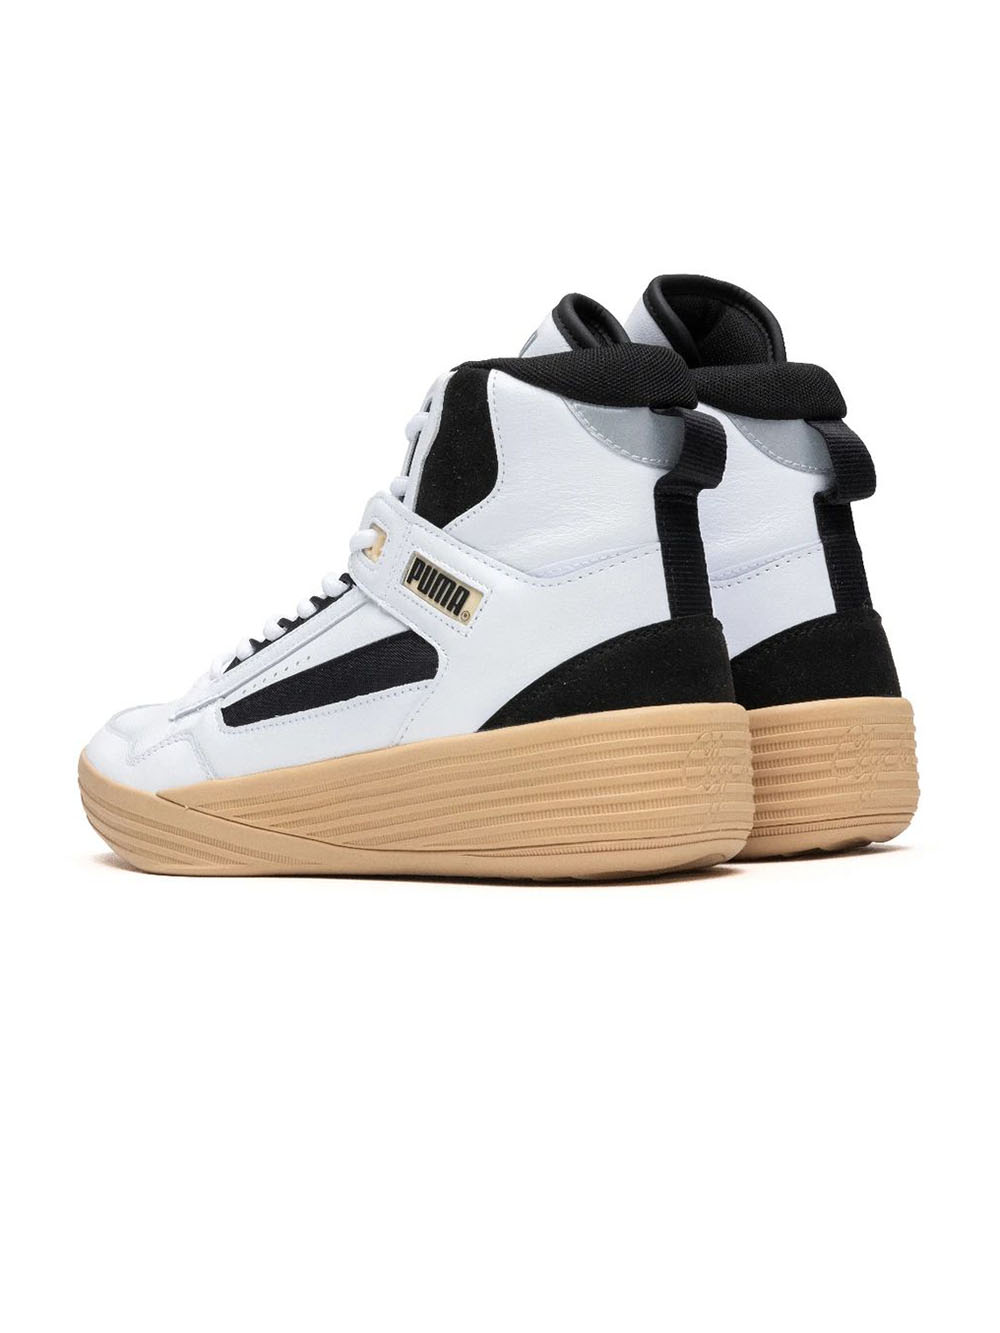 White & Black x RHUDE x Kuzma Clyde All-Pro Mid Sneakers